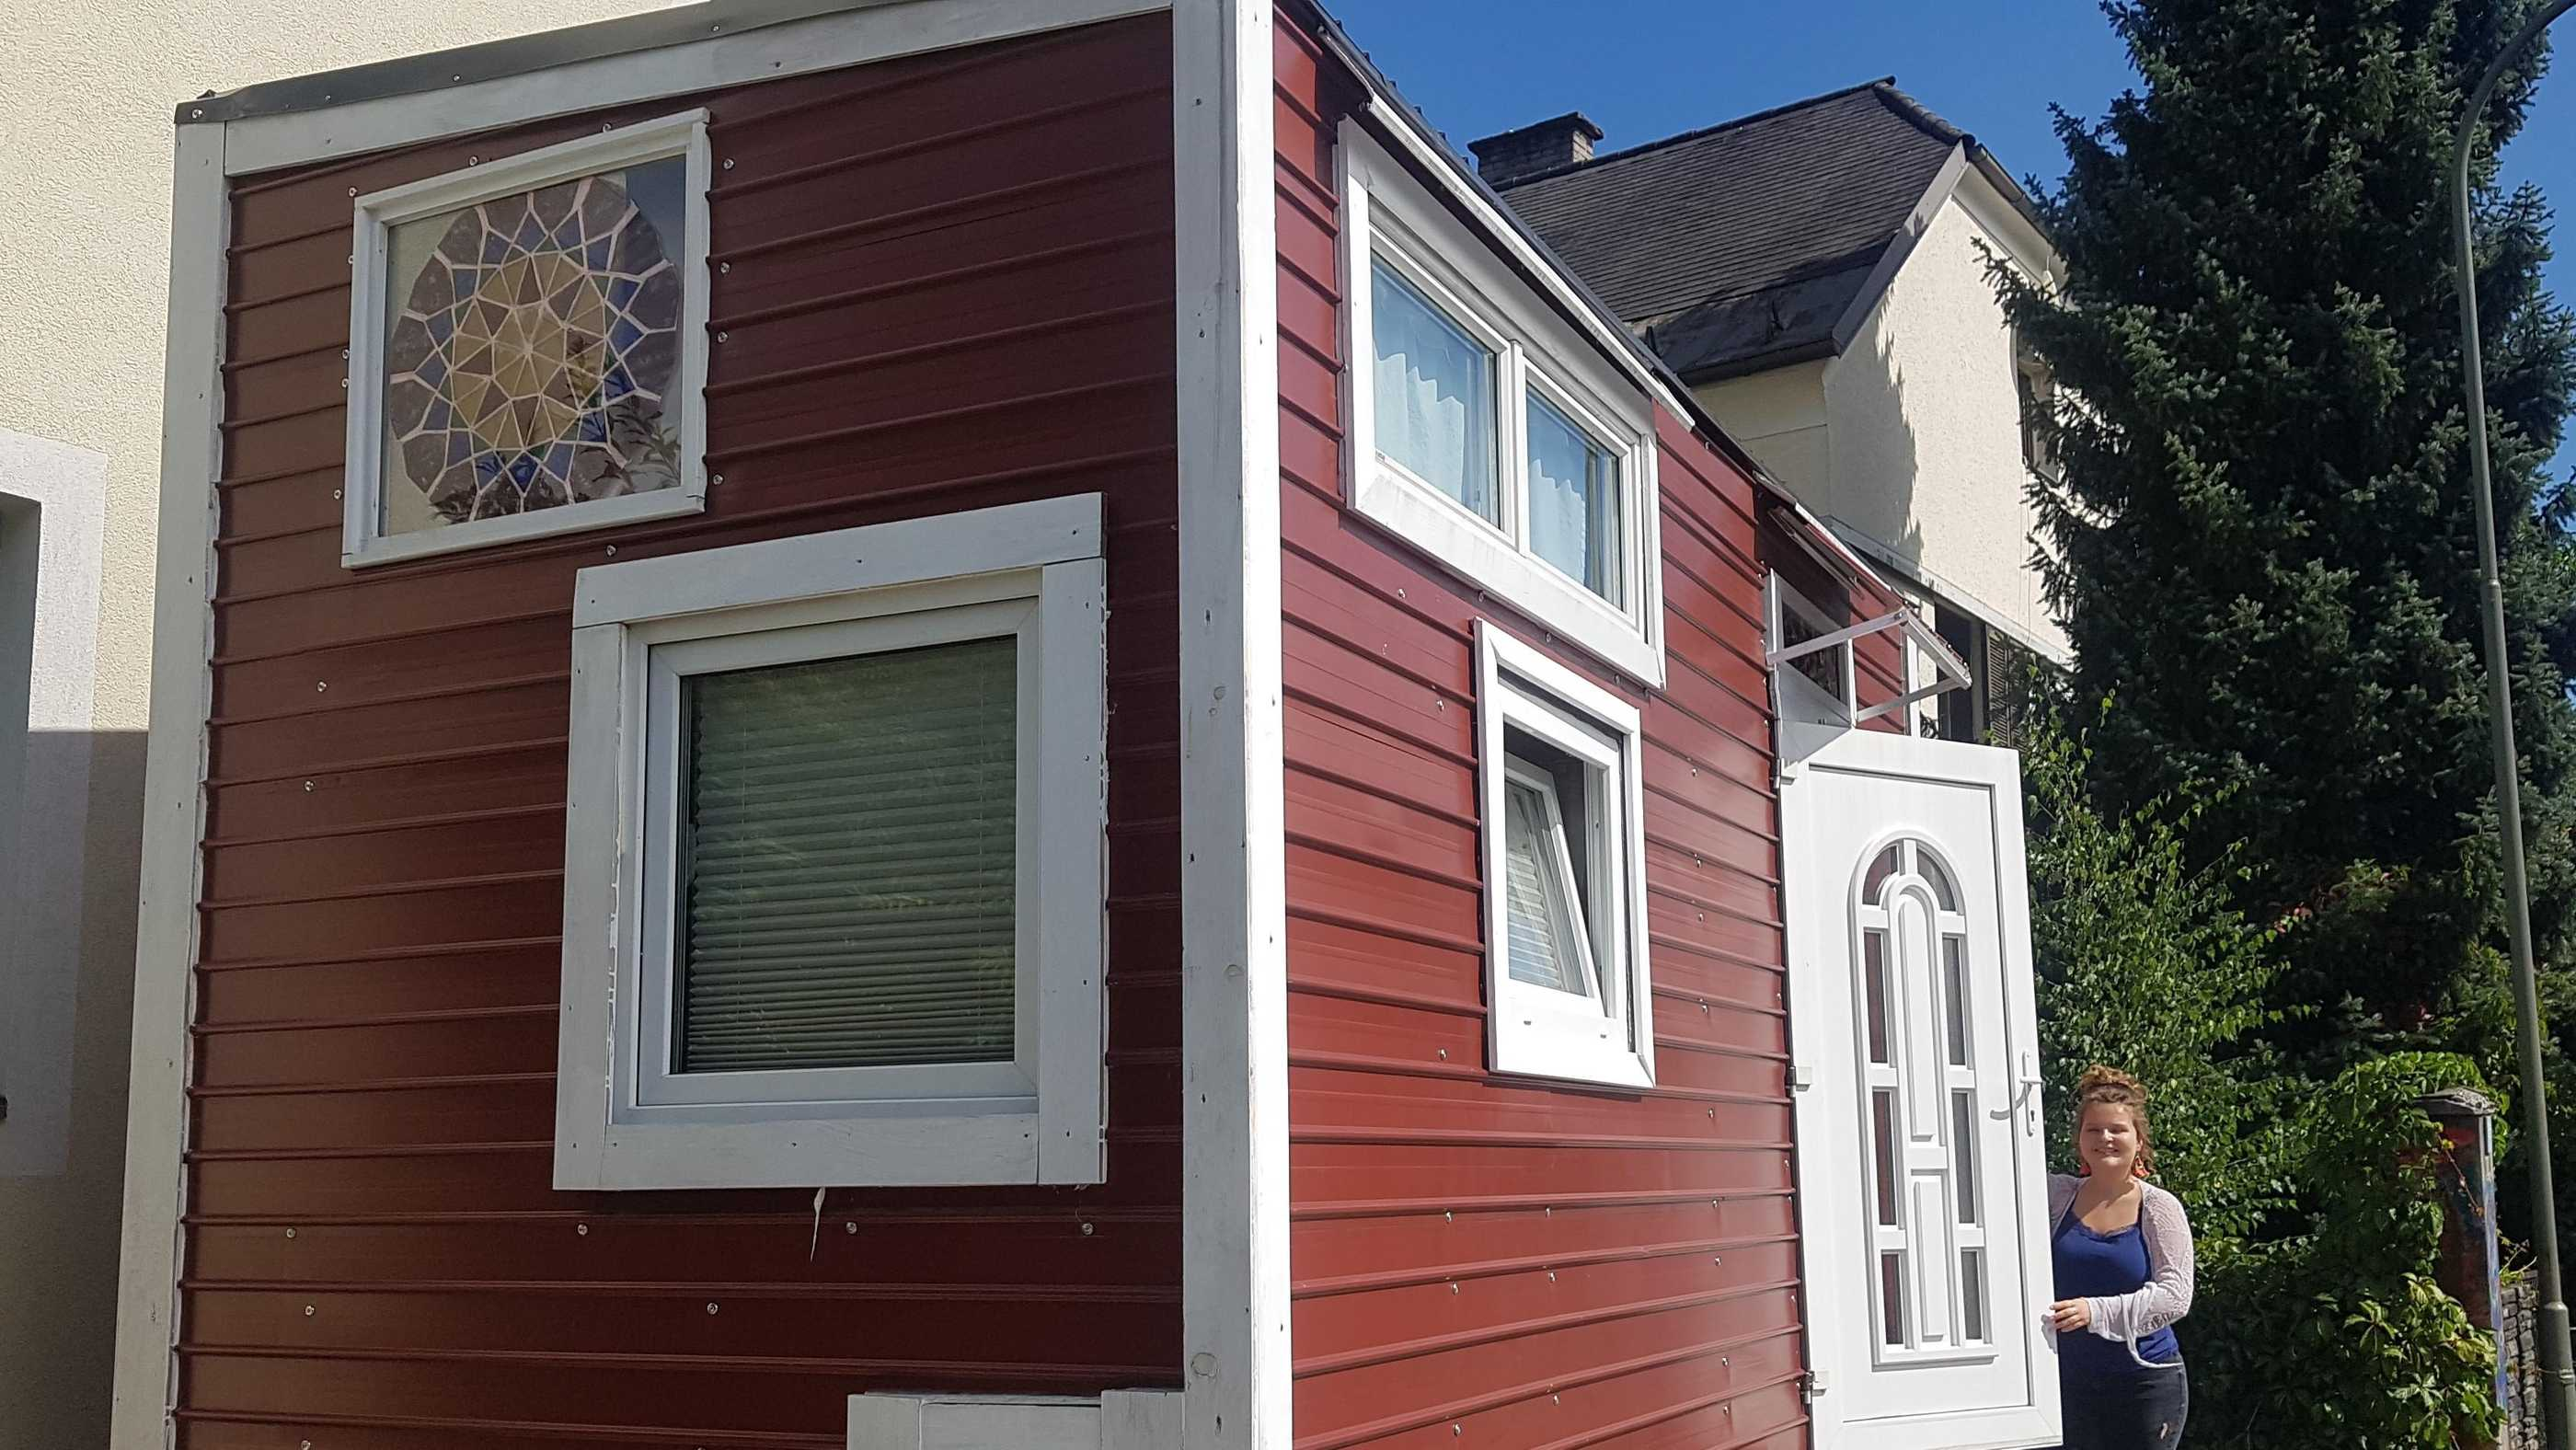 rotes, selbstgebautes Tiny House